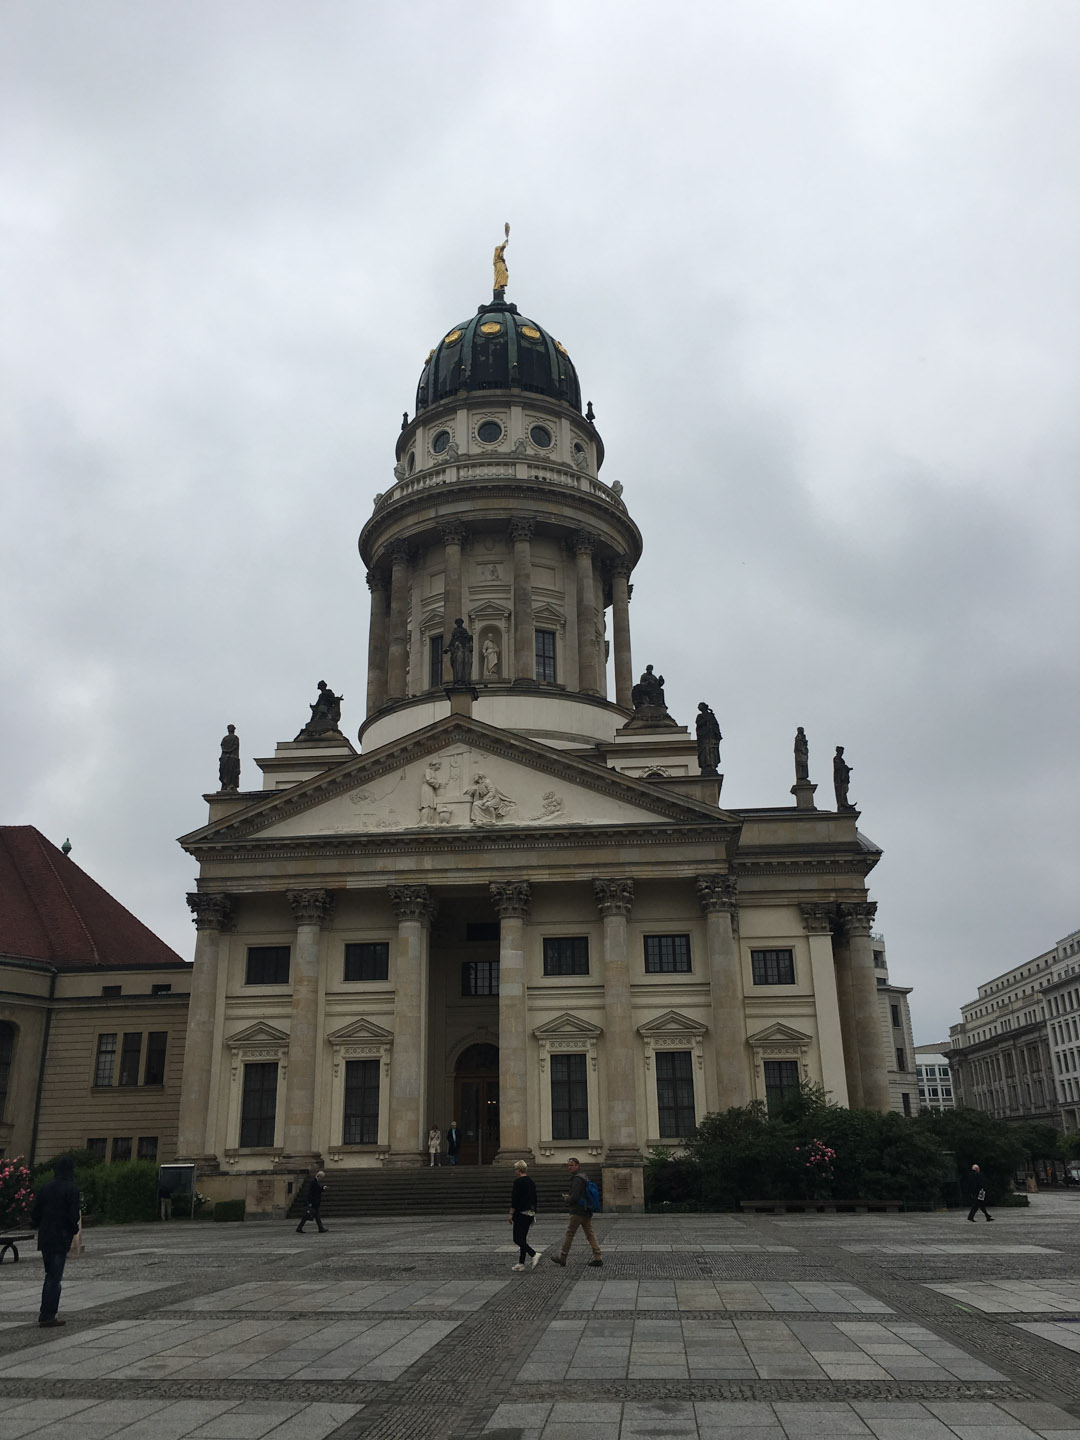 Französischer Dom (French Cathedral) 1701 to 1705 for the Huguenot (Calvinist) population